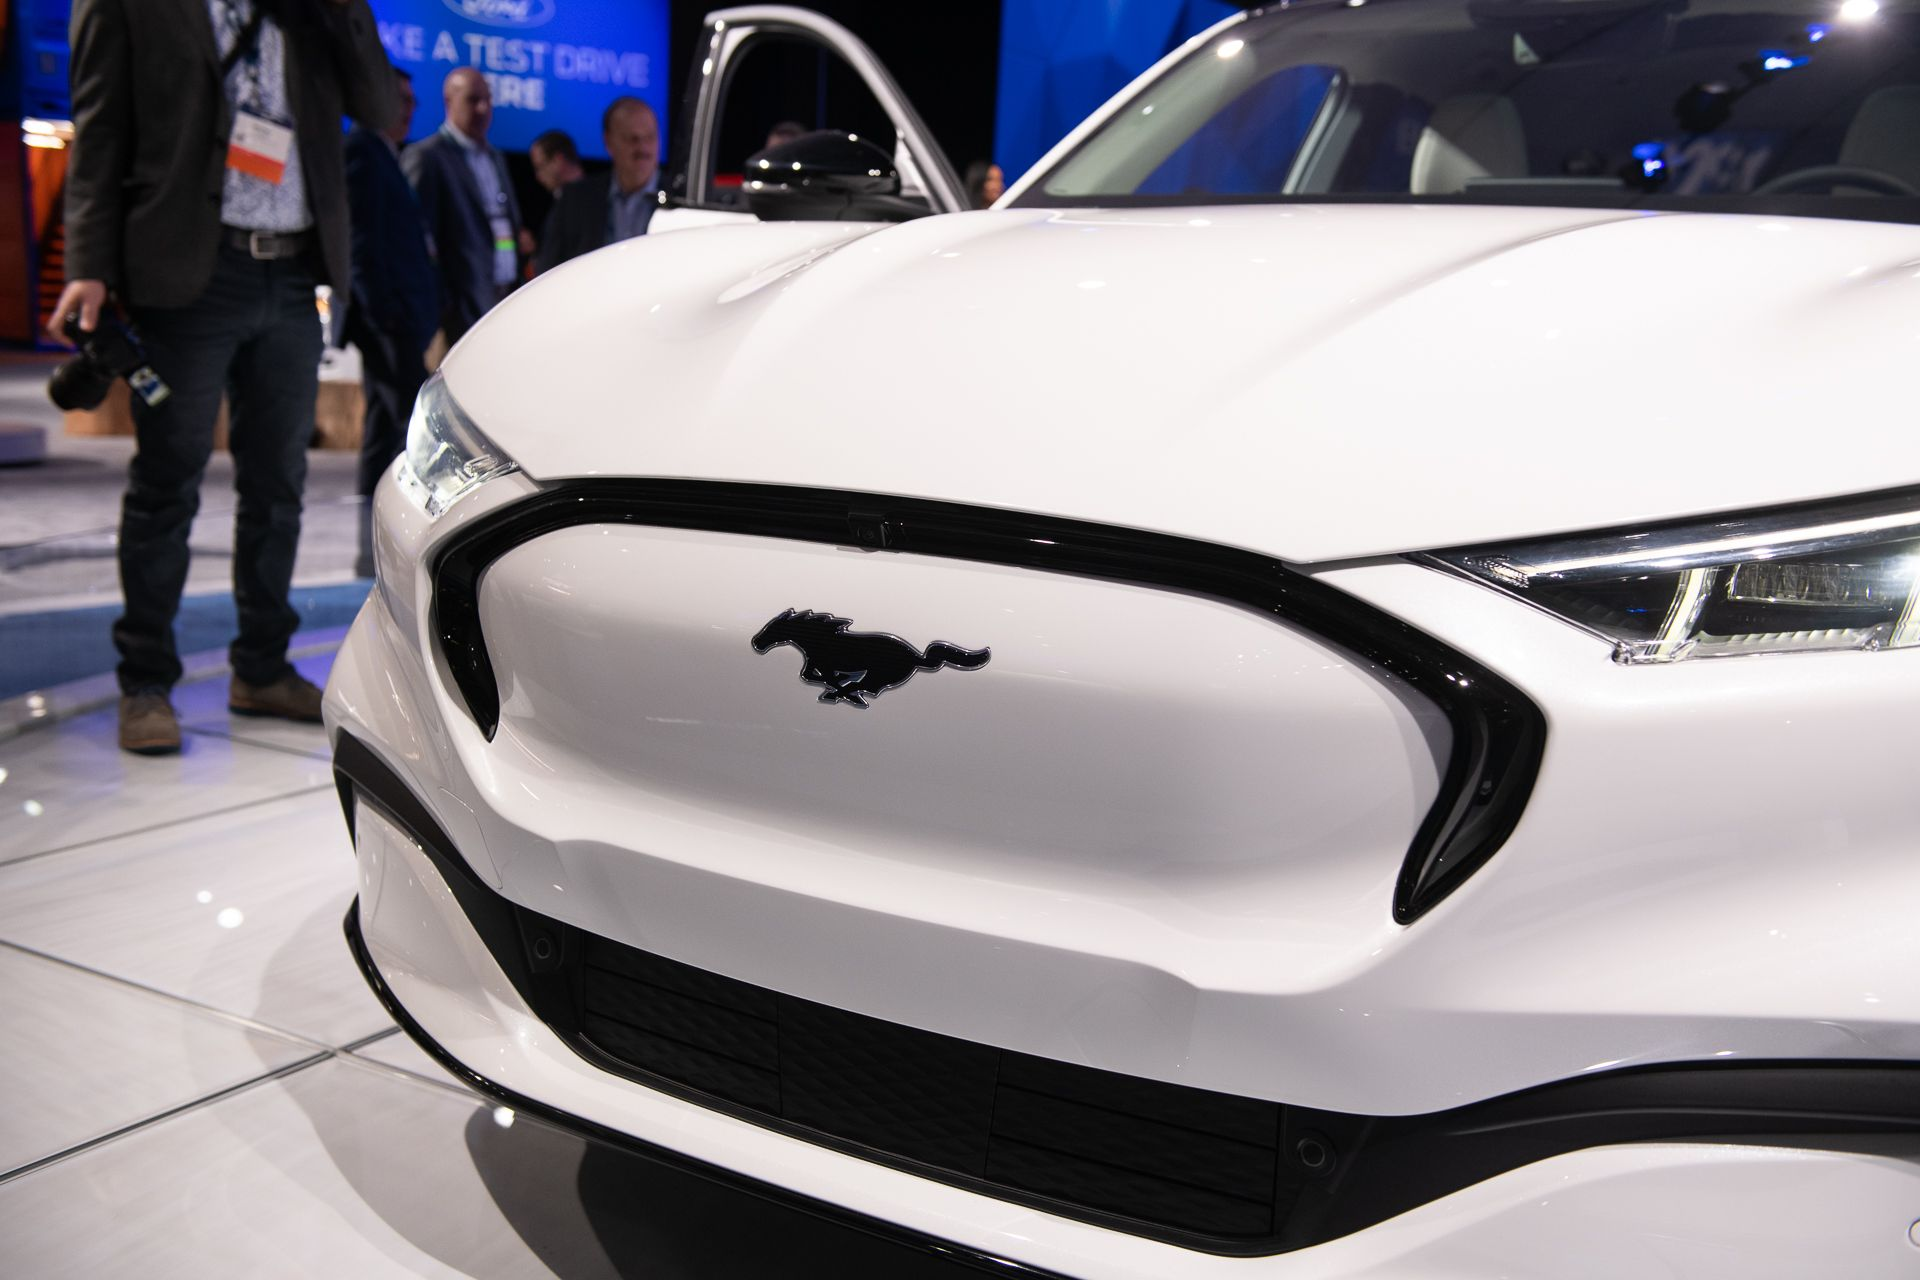 Coming For 2021 Small Crossovers And Evs Star At La Auto Show A Mid Engine American Supercar And An Electric Flourish Fr Super Cars Lincoln Suv Subaru Outback